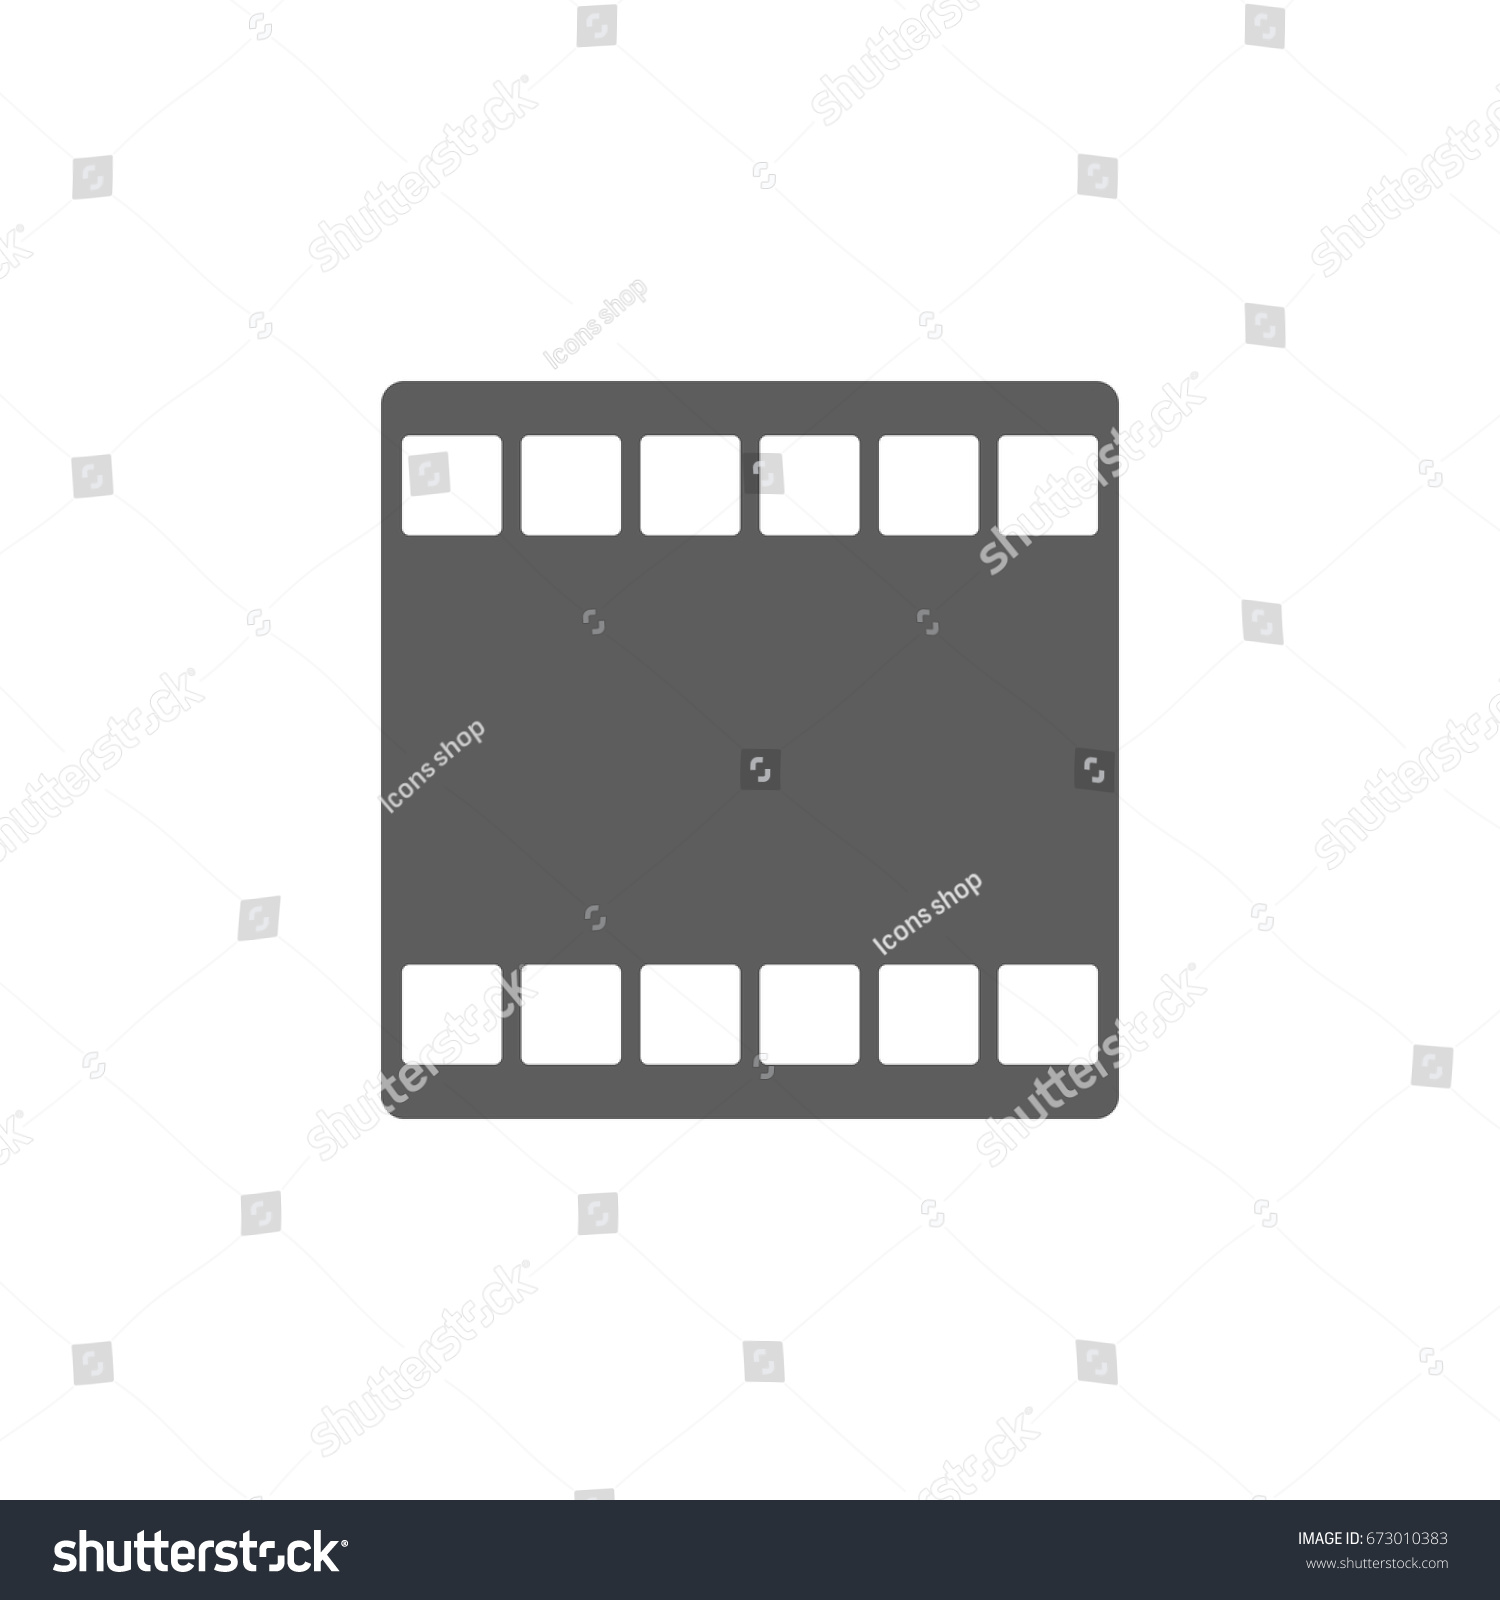 Movie film icon trendy flat style stock vector 673010383 movie film icon in trendy flat style isolated on white background symbol for your web biocorpaavc